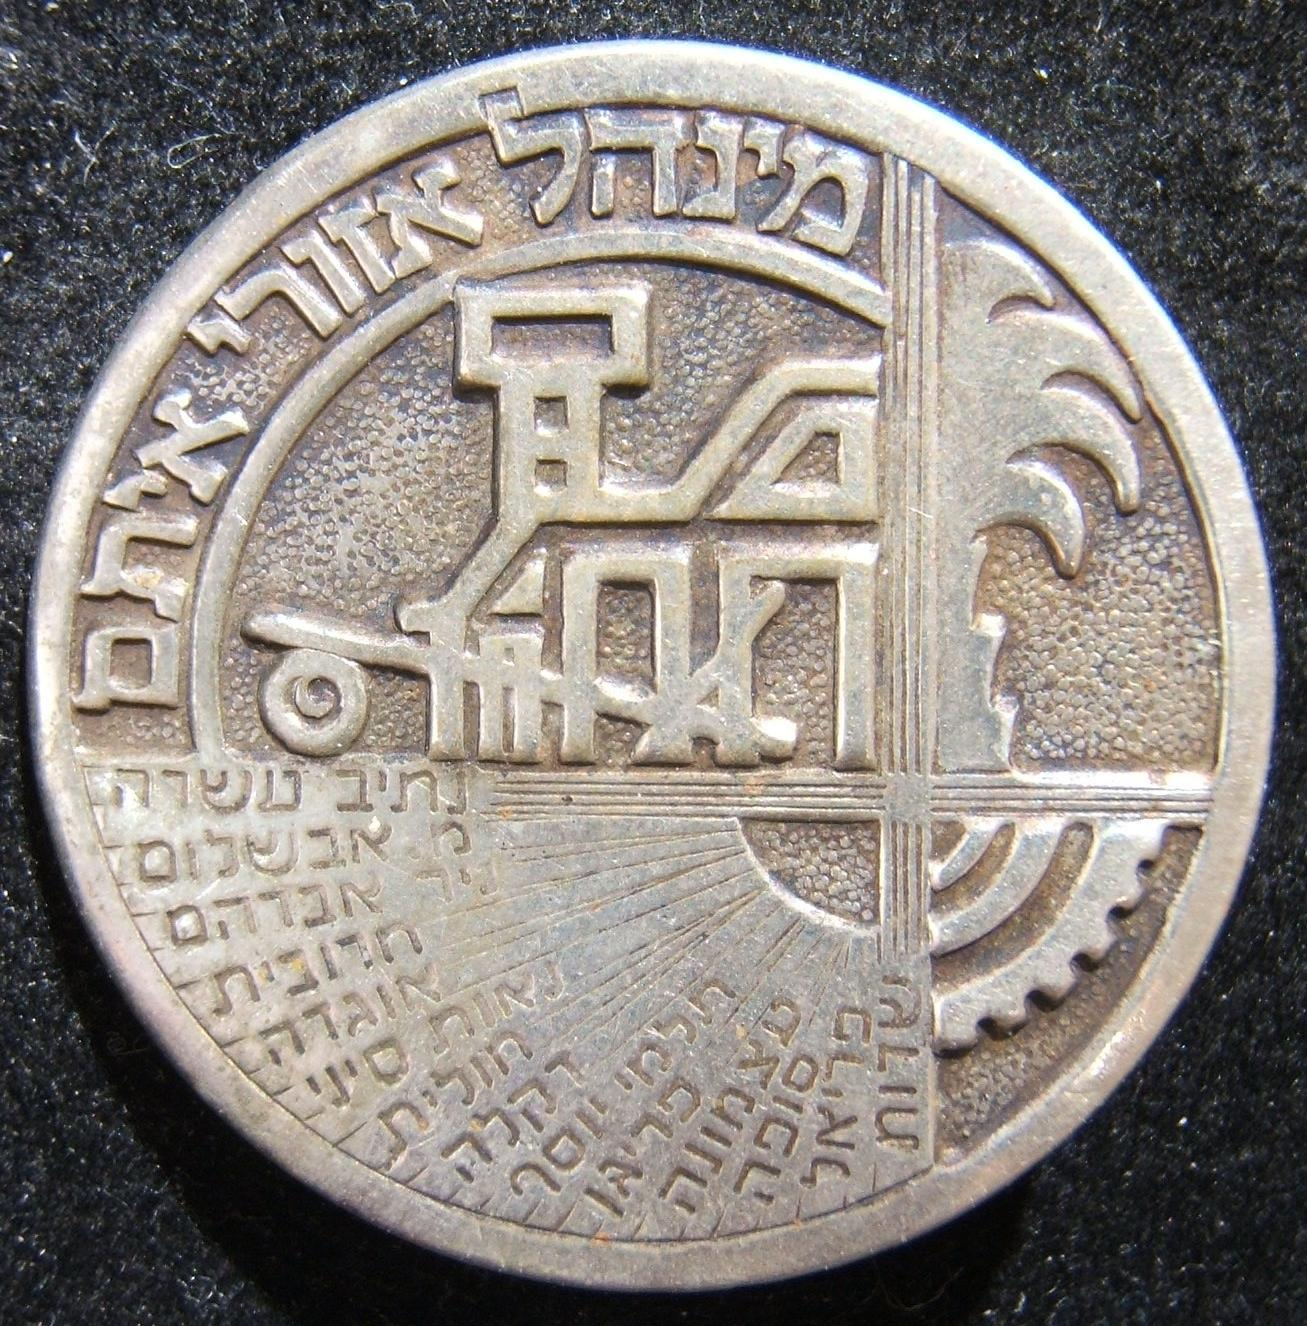 Rare pin of the short-lived Eitam Regional Council encompassing the Israeli settlements of the Yamit strip of the northern Sinai peninsula, circa. 1970's; size: 35mm; weight: 3.75g